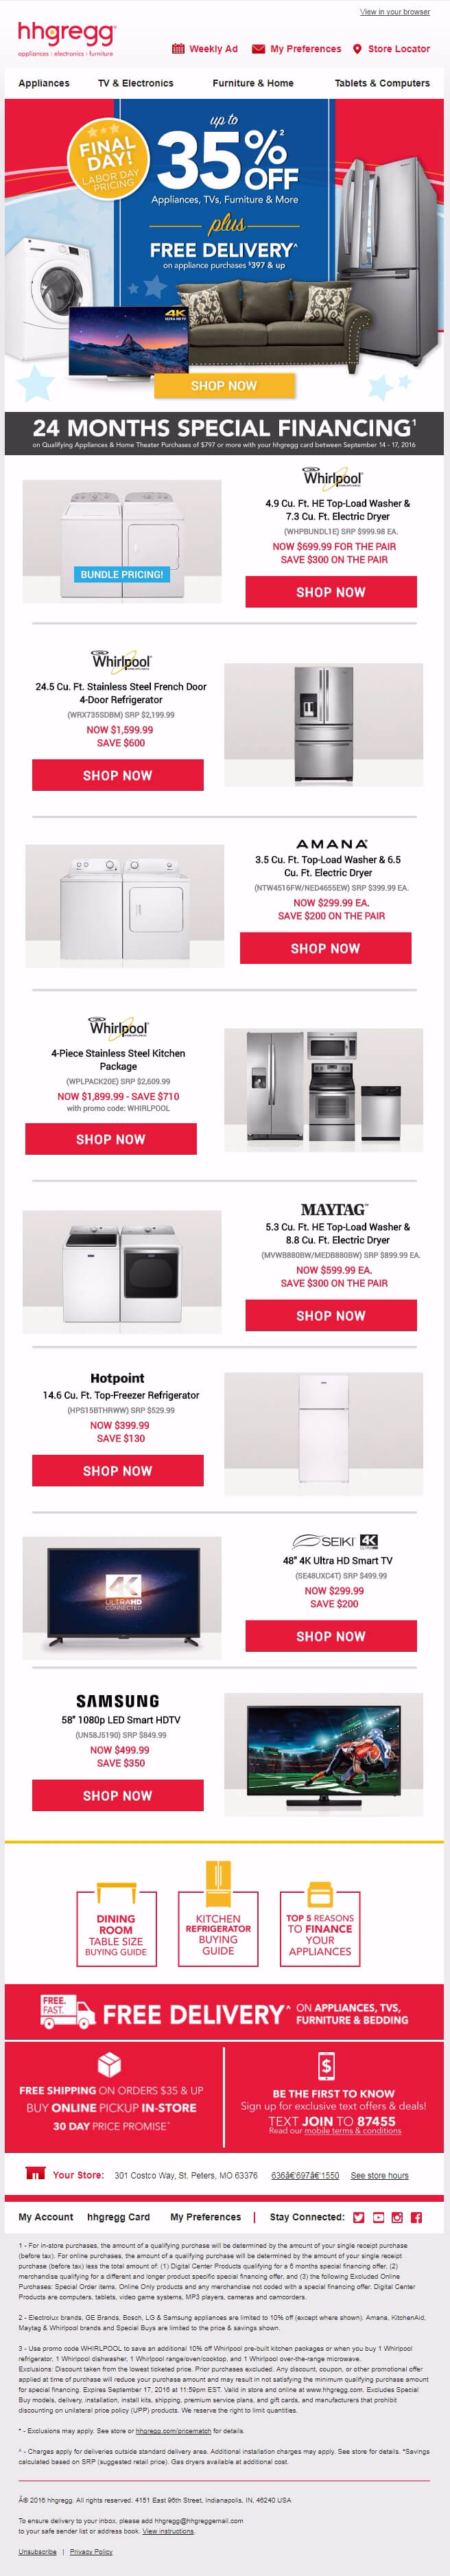 Labor Day Email - hhgregg